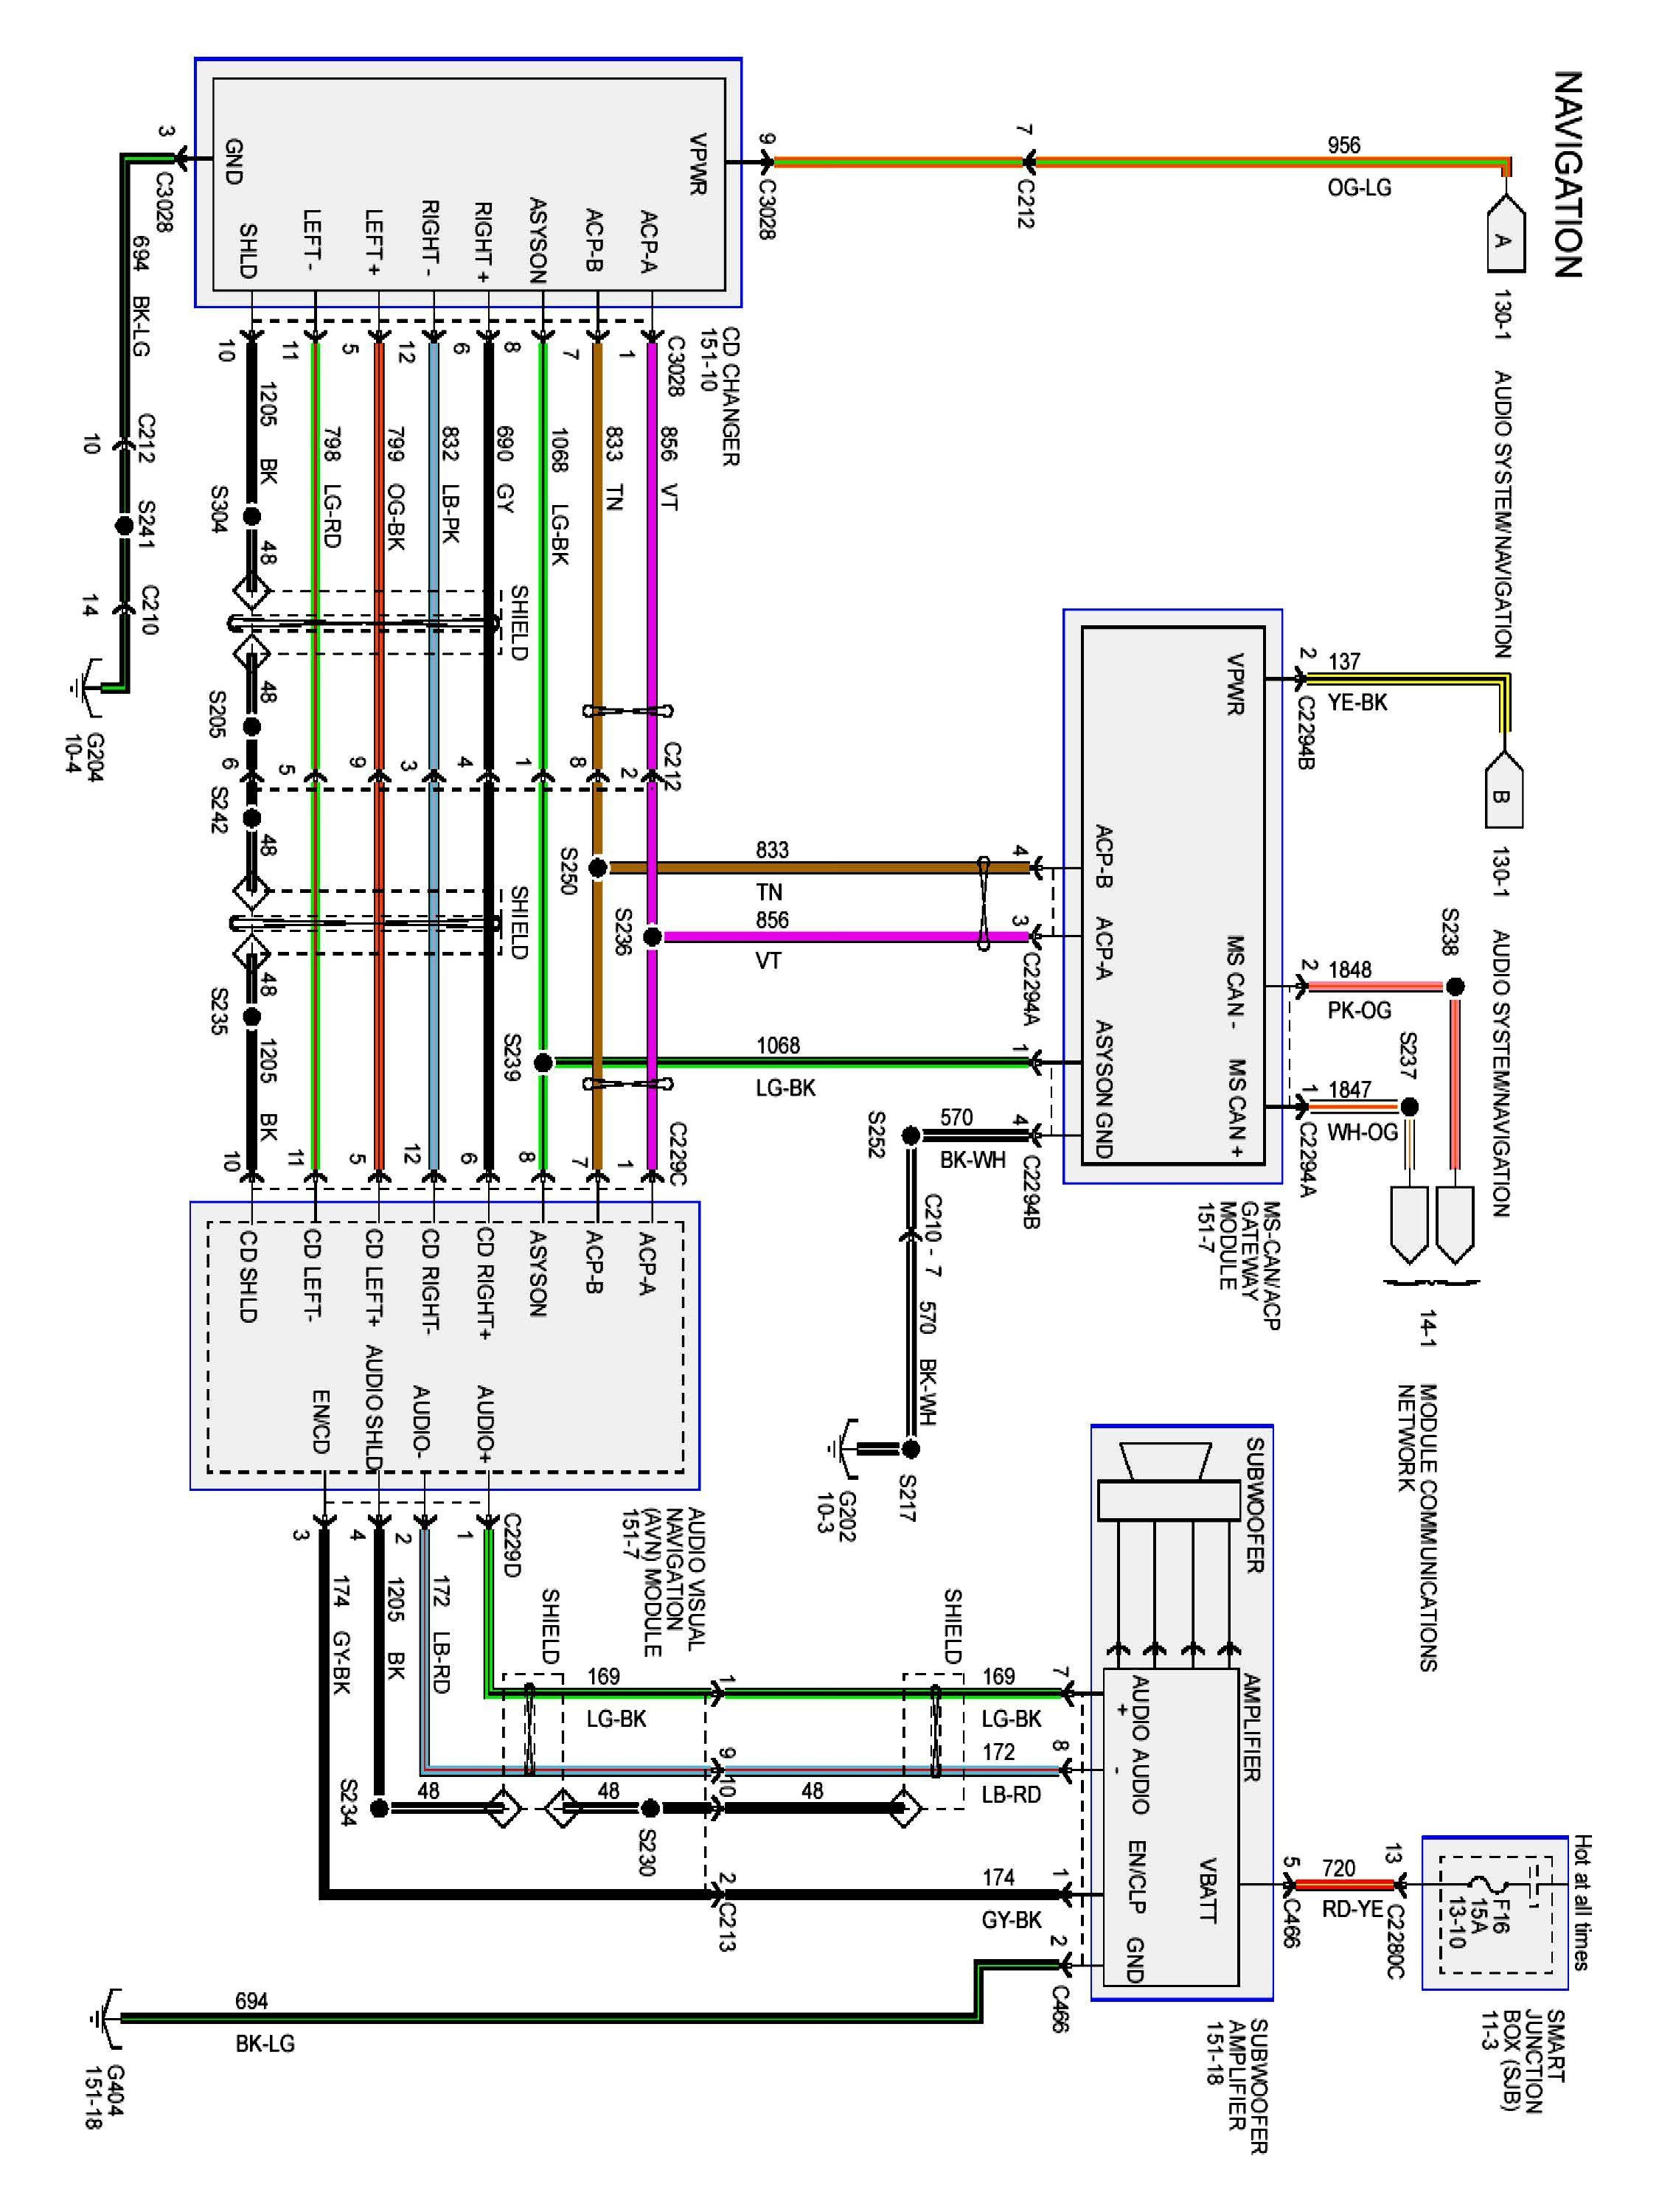 2005 Chevy Silverado Radio Wiring Harness Diagram